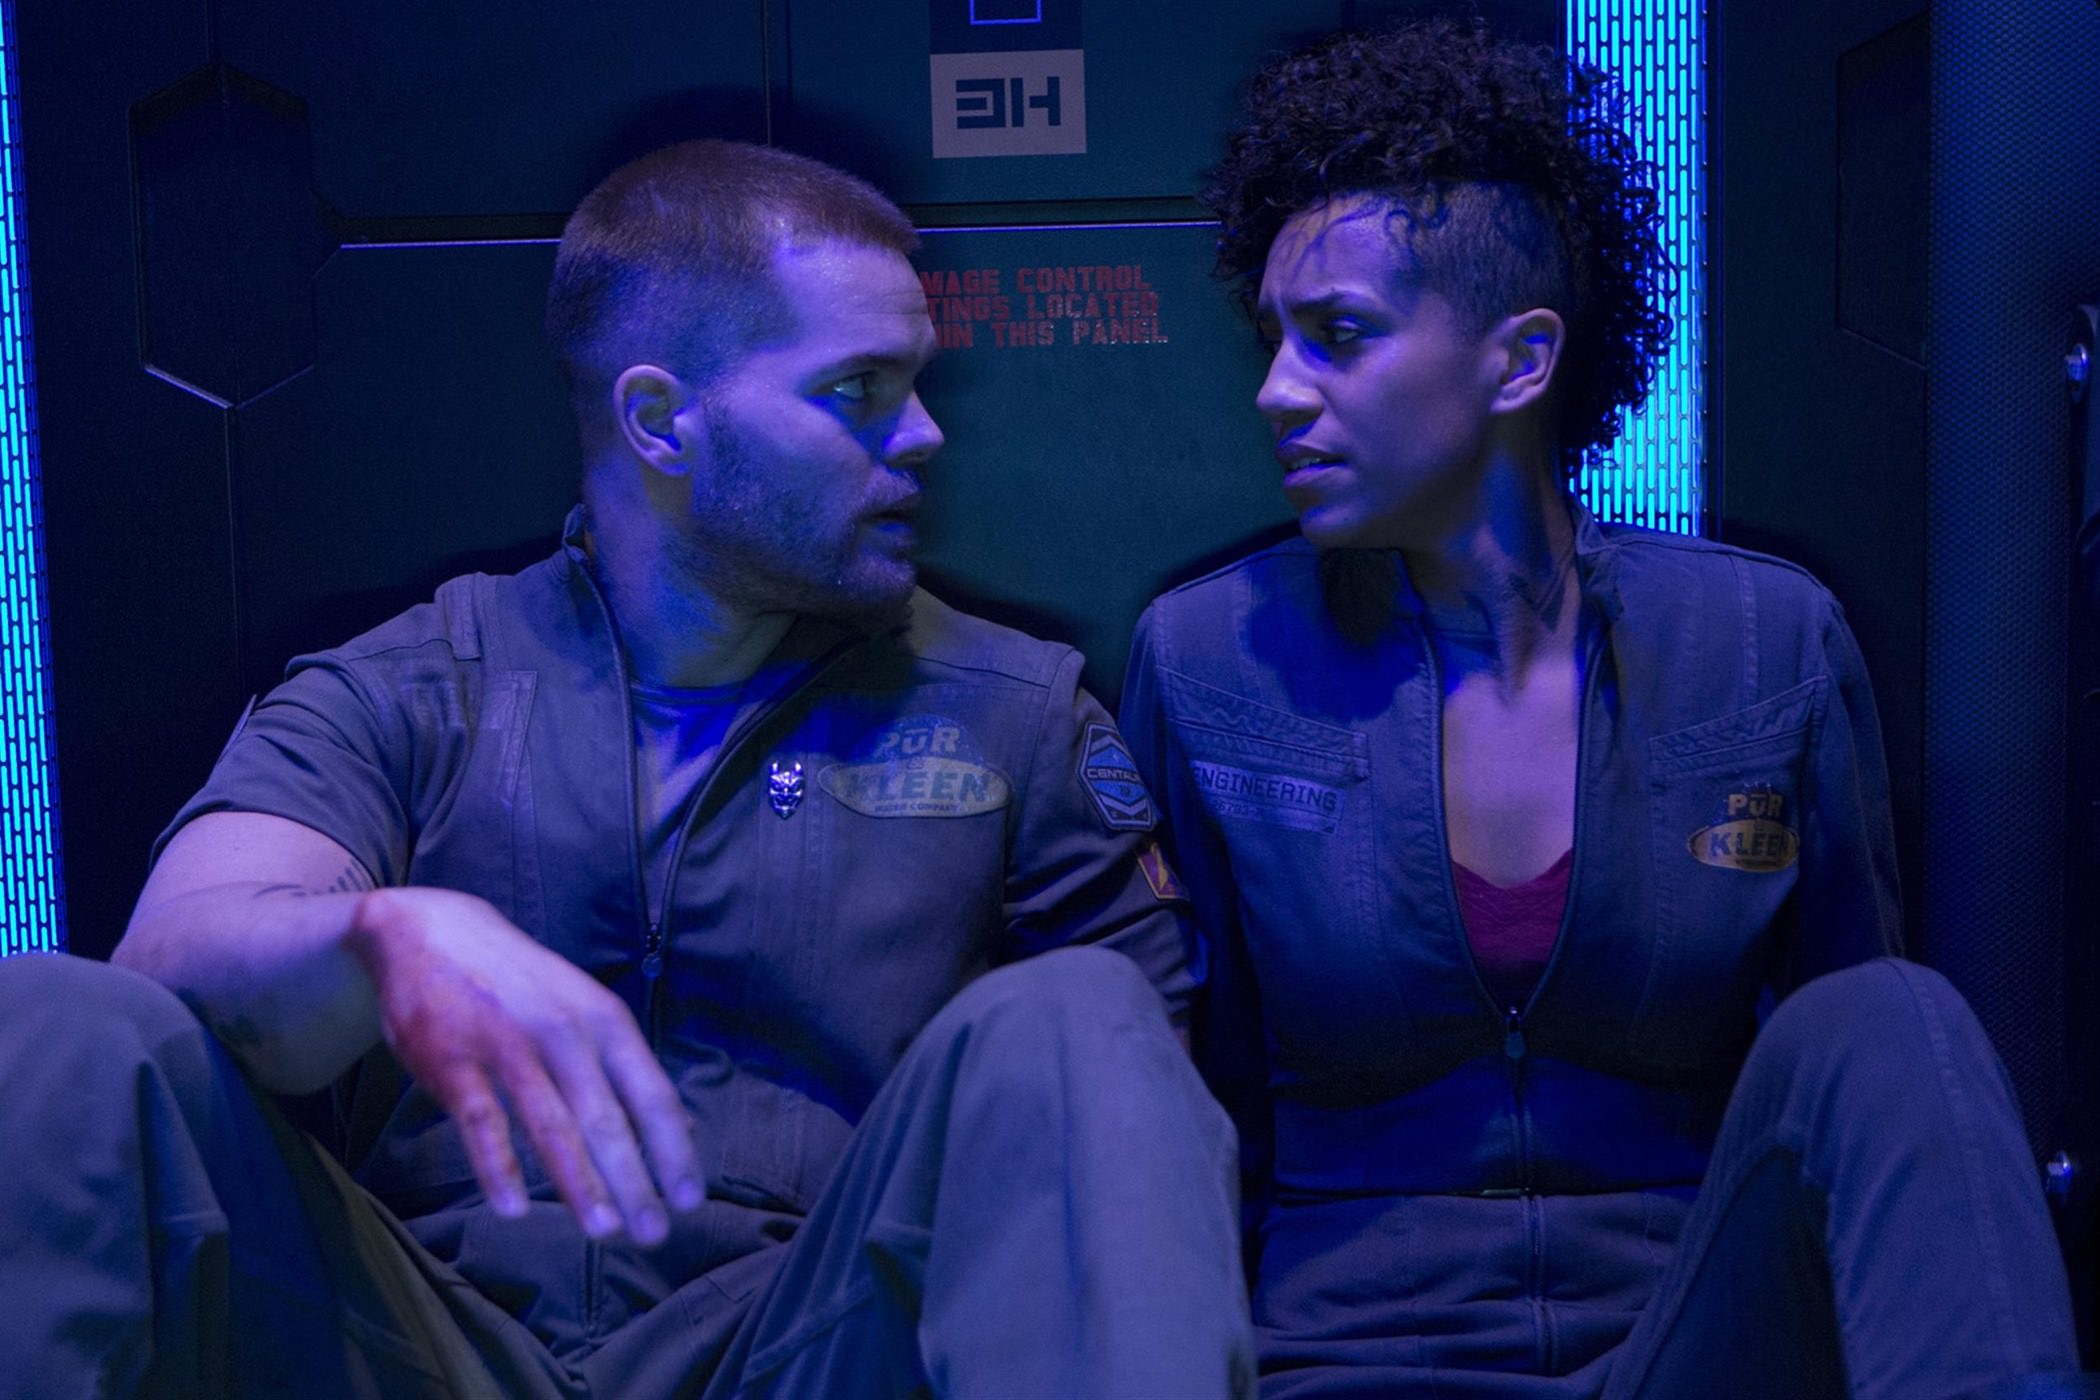 the-expanse-dominique-tipper-wes-chatham